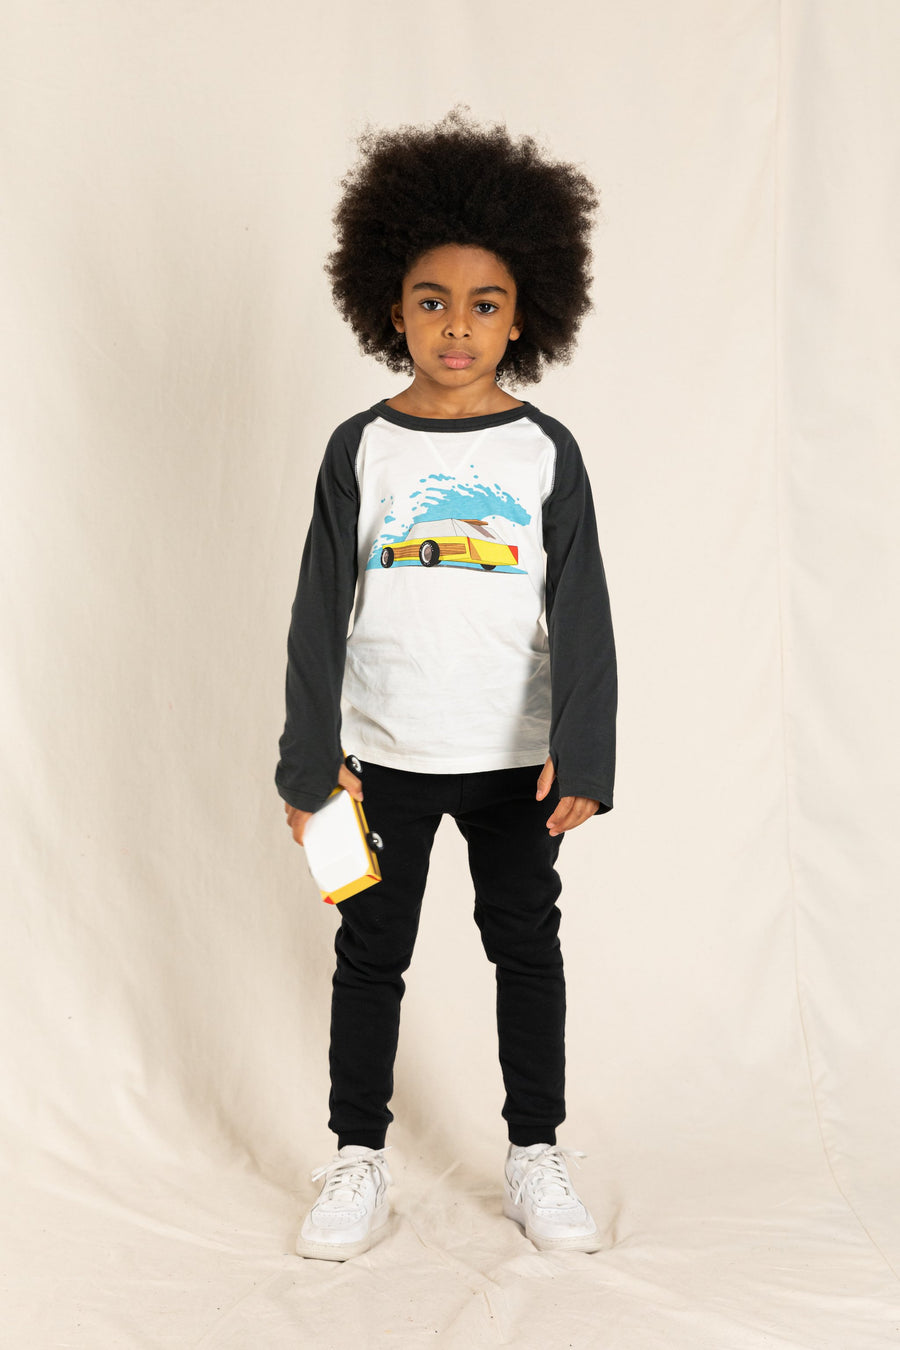 NEAL Ash Black/Off White Woodie - Long Sleeves T-Shirt